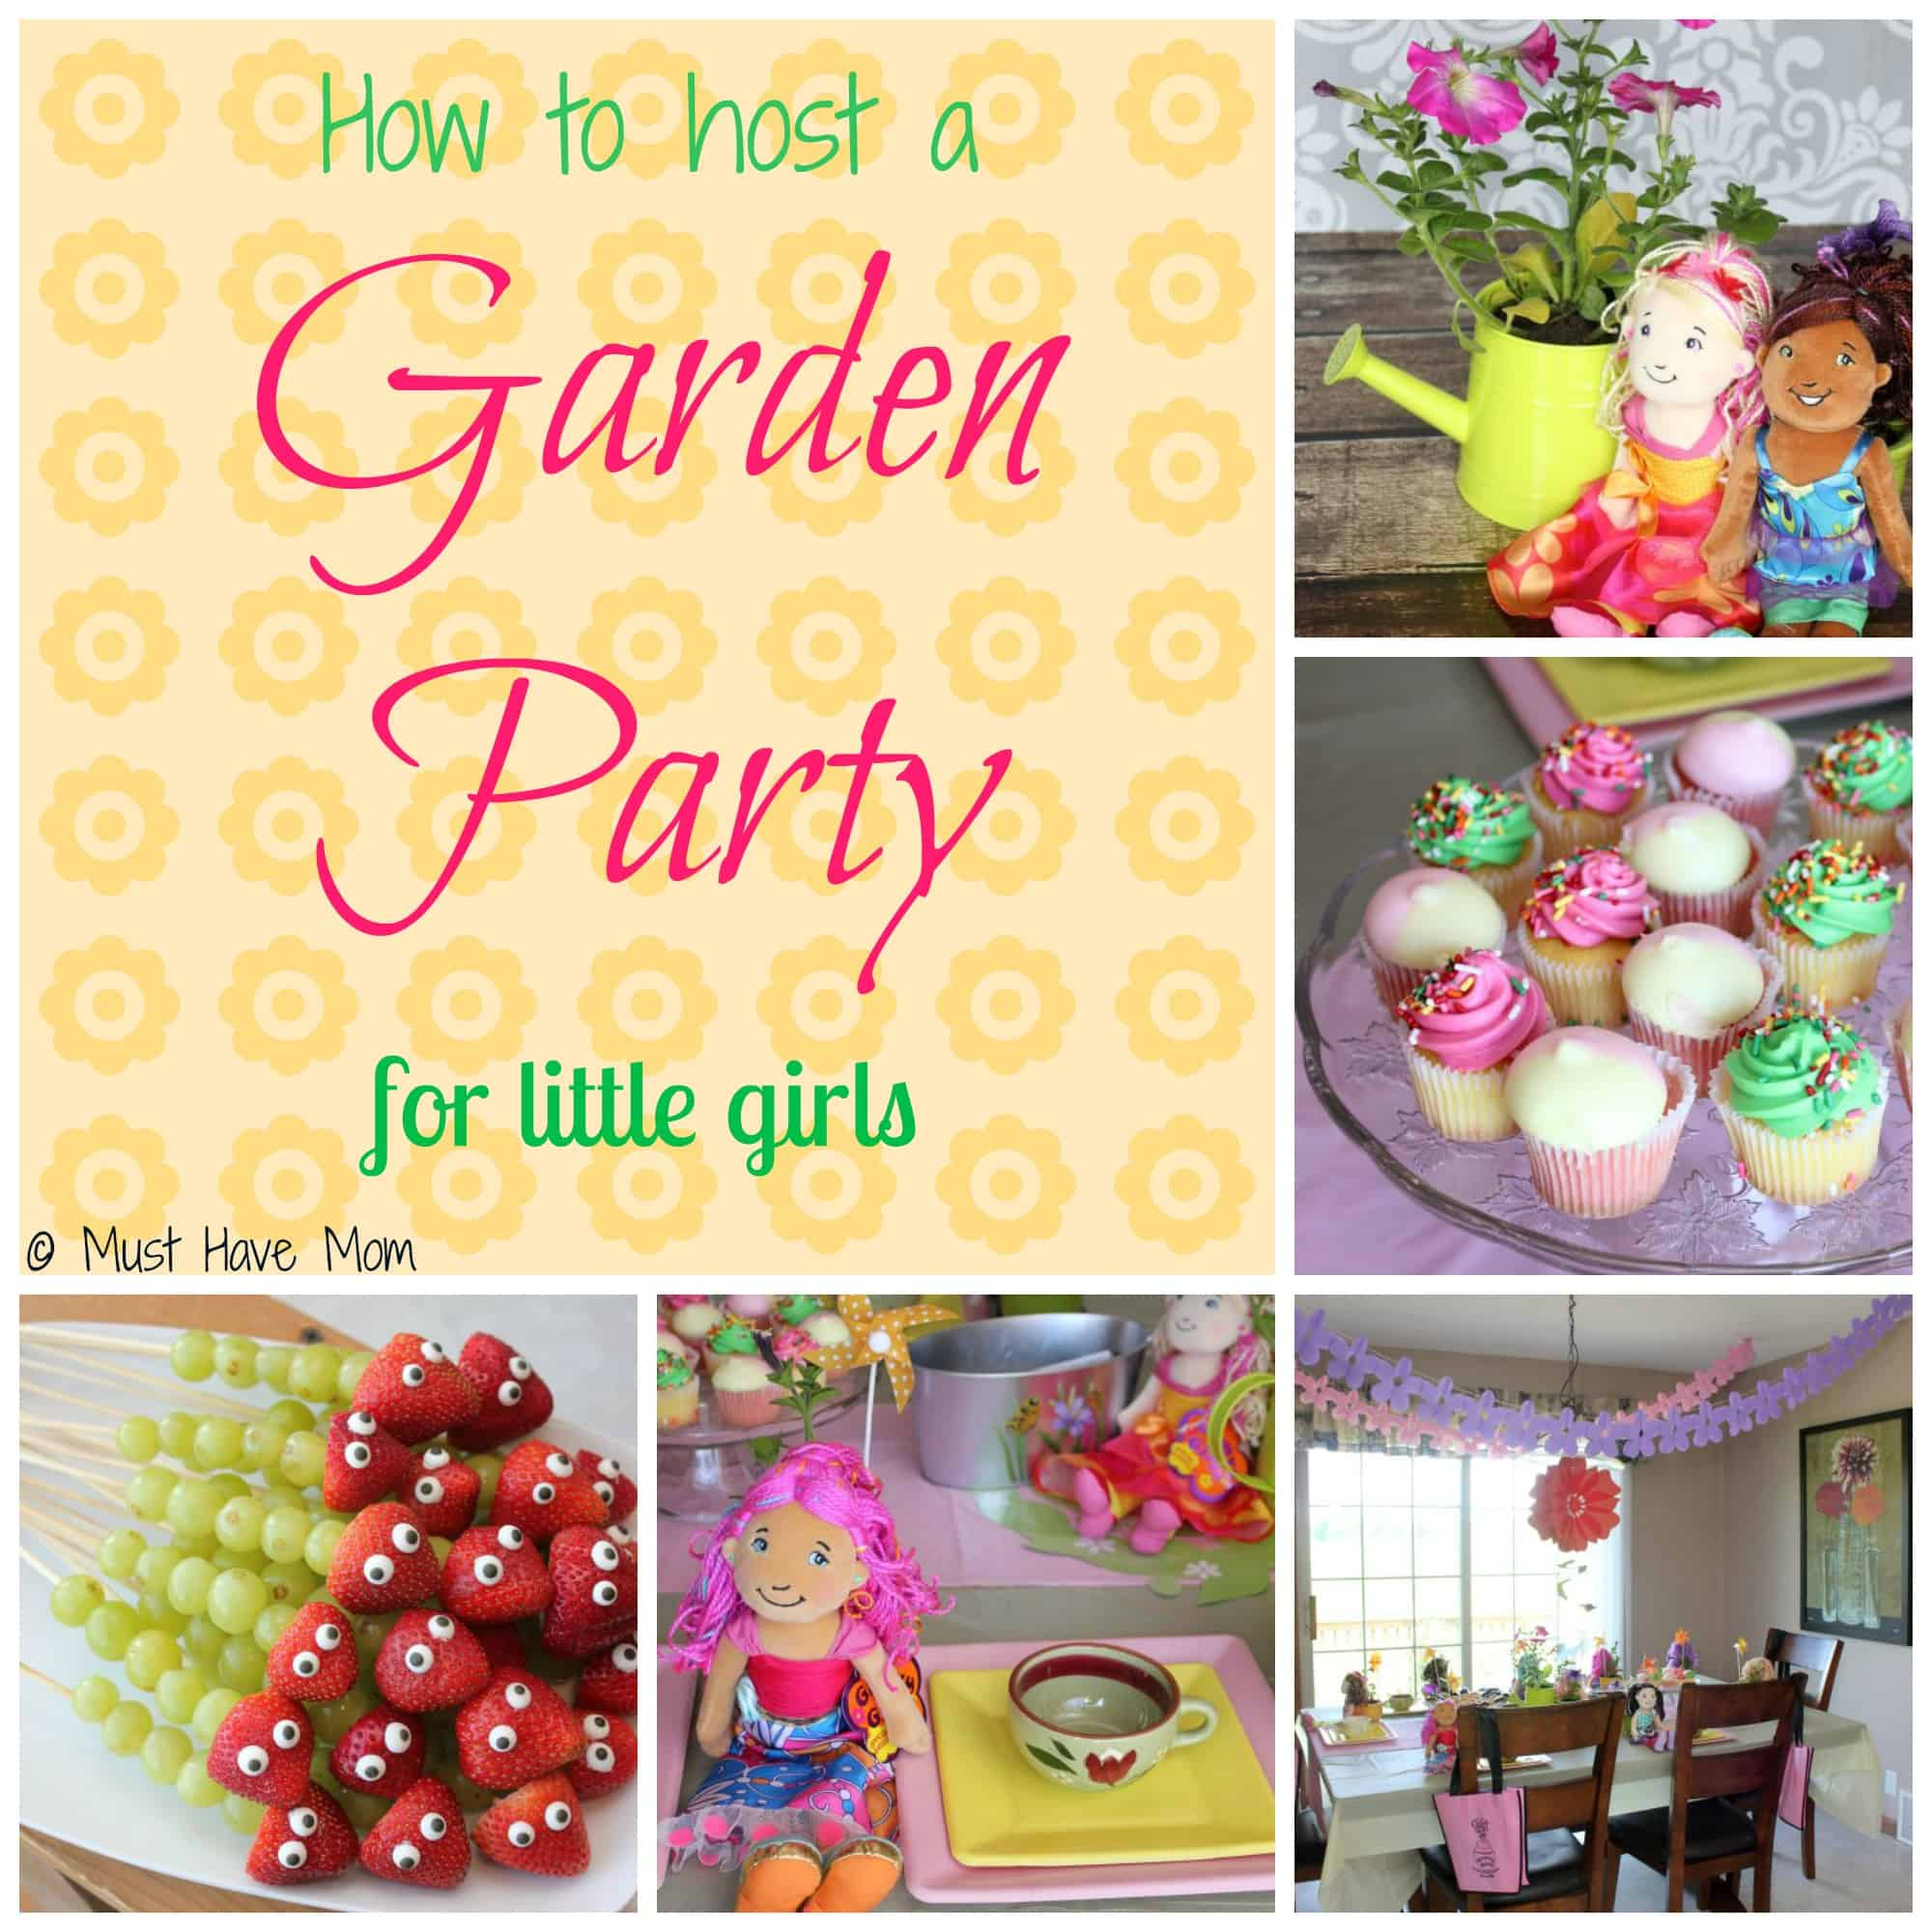 How To Host A Party Extraordinary With Little Girls Garden Parties Photos